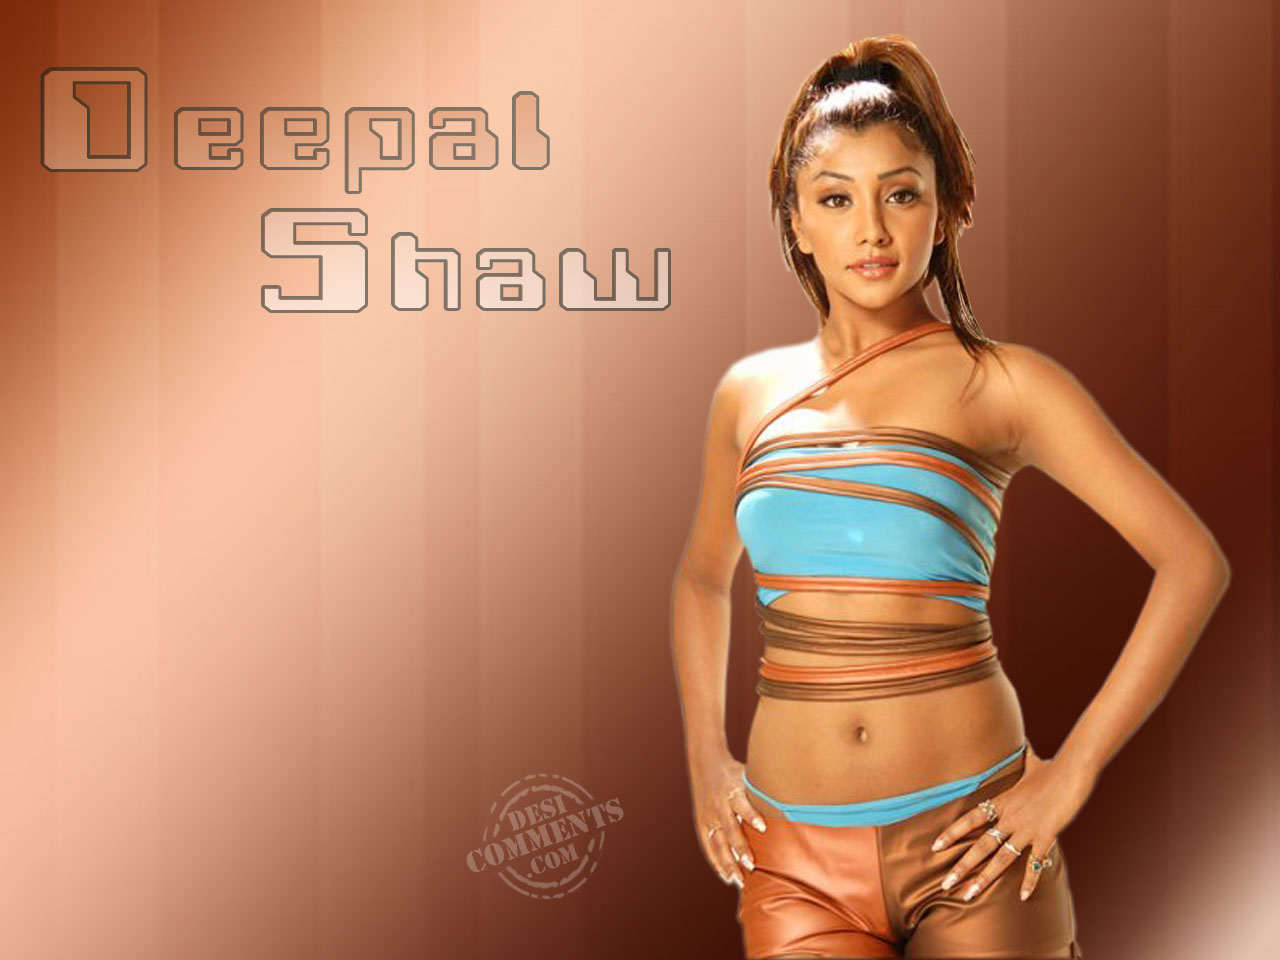 deepal shaw songs listdeepal shaw instagram, deepal shaw 2016, deepal shaw age, deepal shaw wiki, deepal shaw actress, deepal shaw movie list, deepal shaw songs list, deepal shaw facebook, deepal shaw husband, deepal shaw hot, deepal shaw height, deepal shaw hot pics, deepal shaw baby doll, deepal shaw bikini, deepal shaw feet, deepal shaw songs, deepal shaw 2015, deepal shaw images